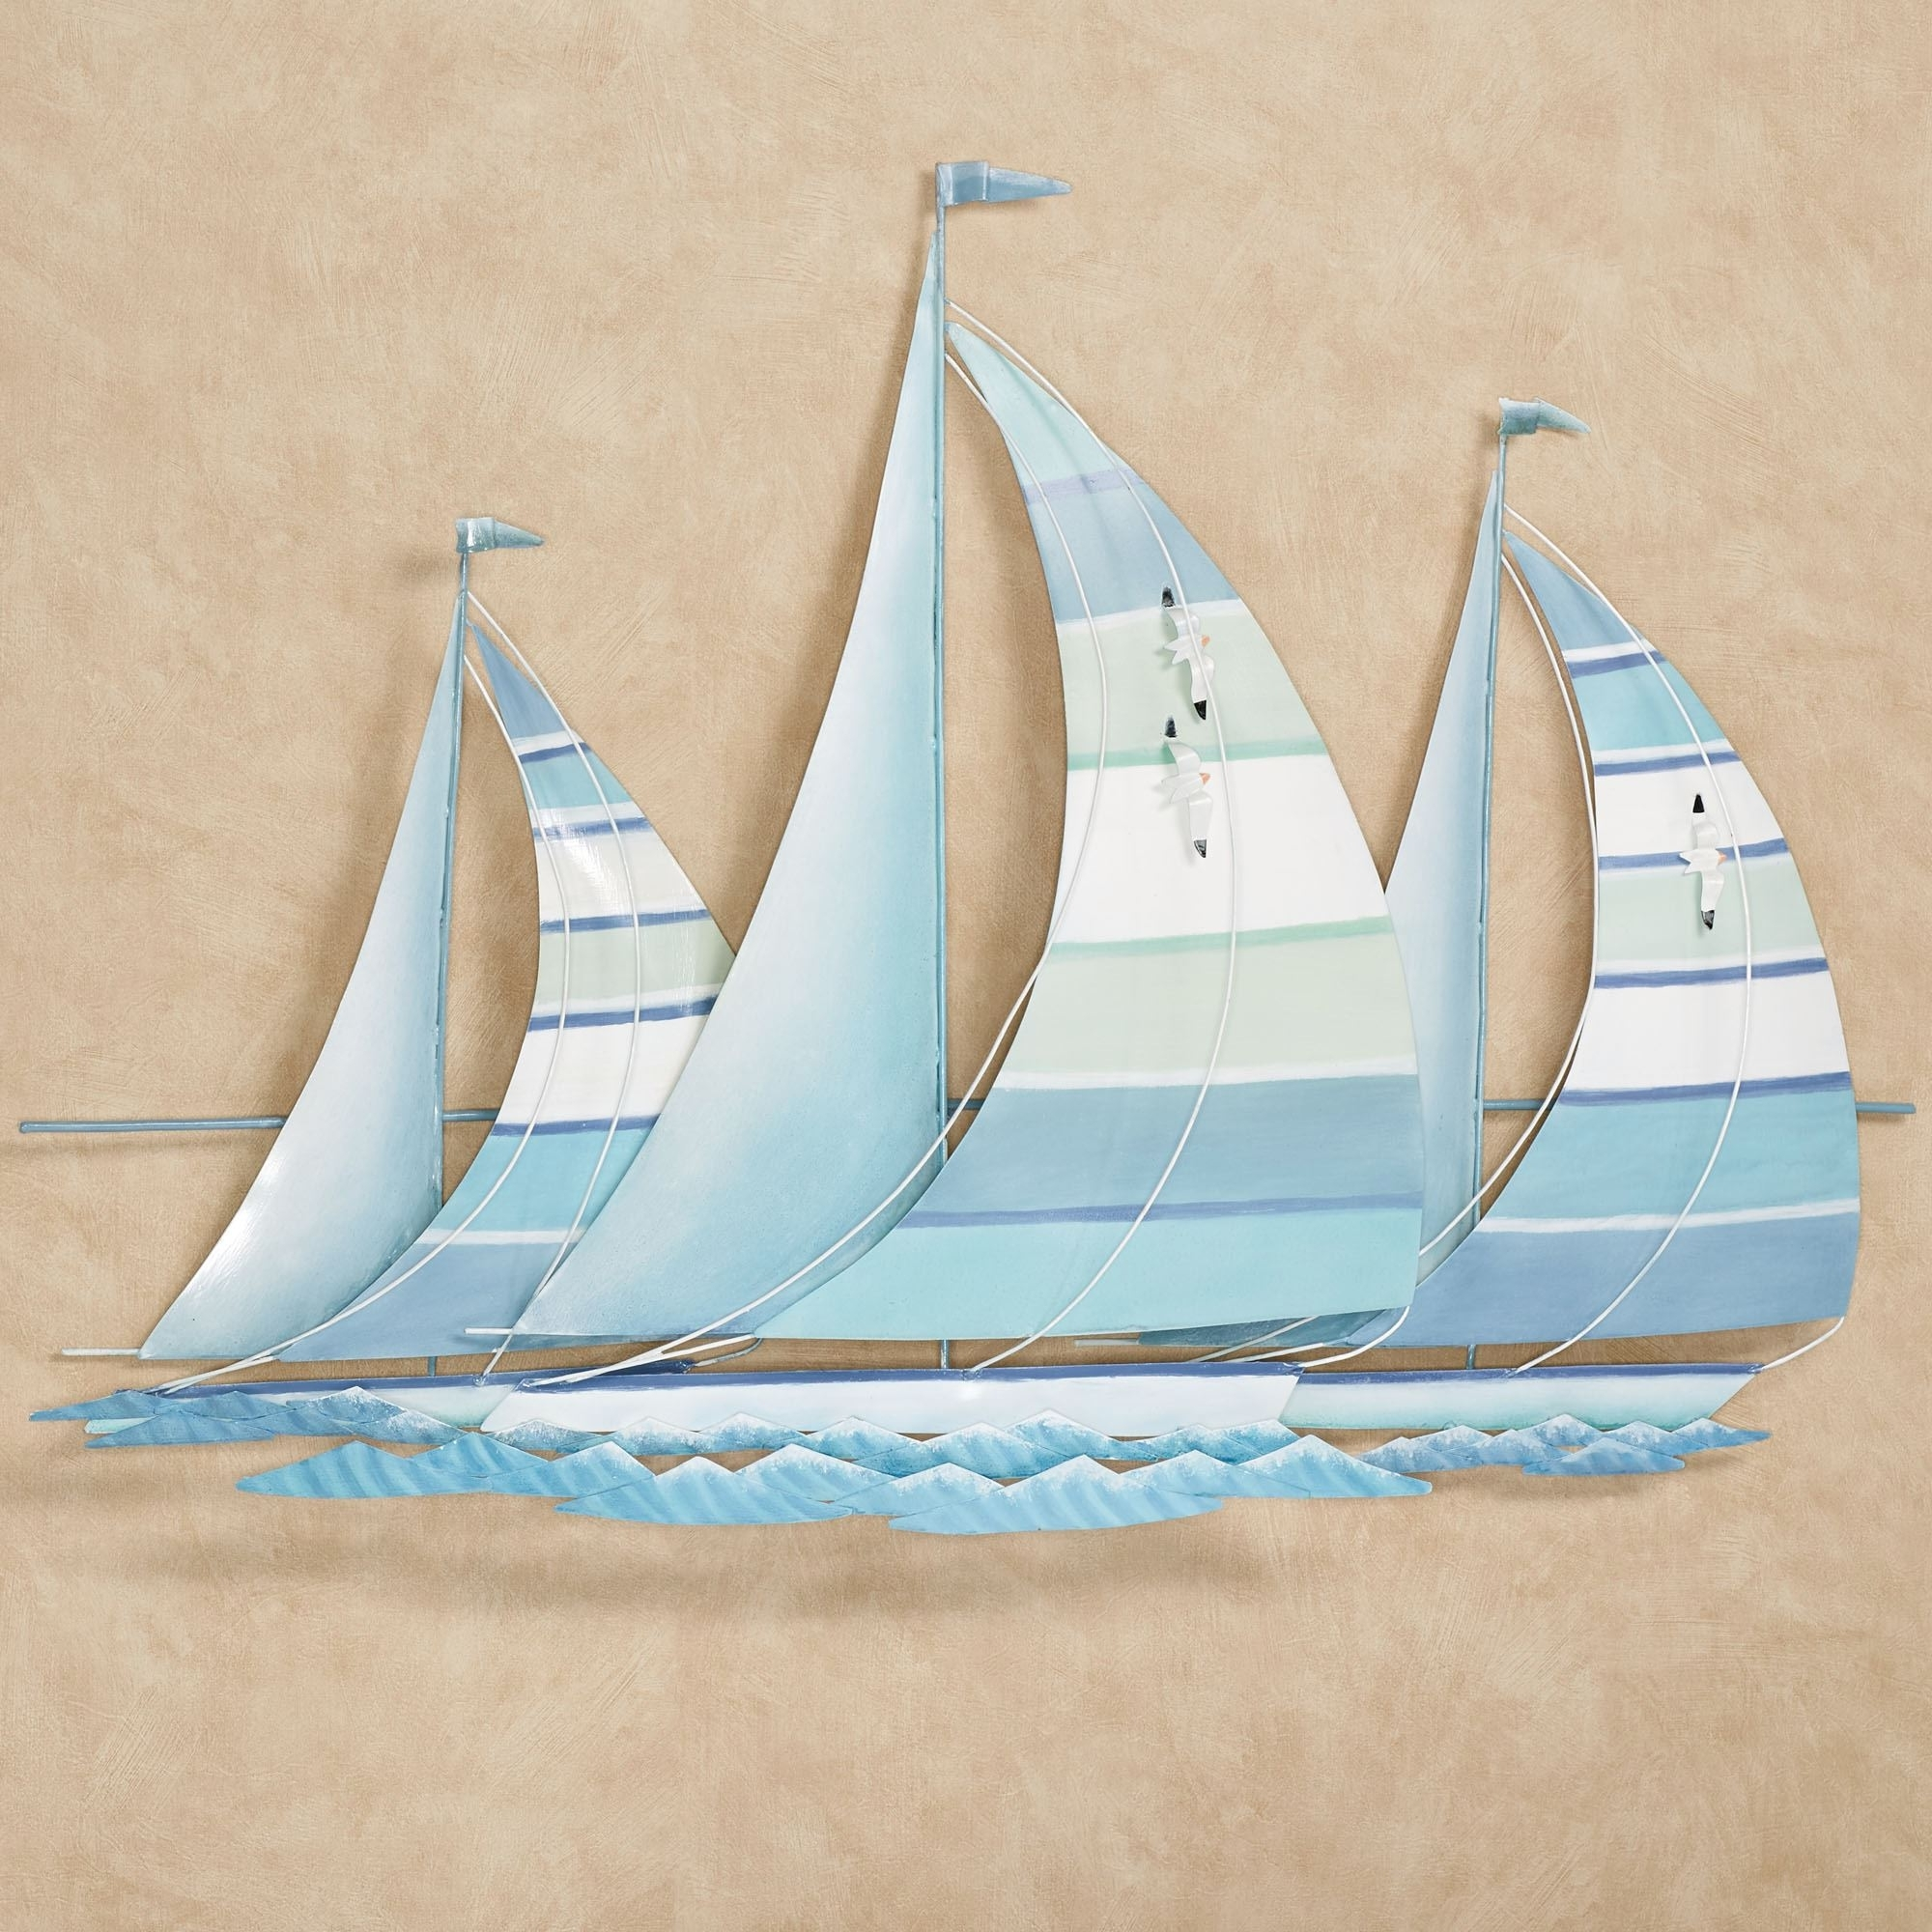 Touch Of Class Regarding Metal Sailboat Wall Art (View 14 of 15)